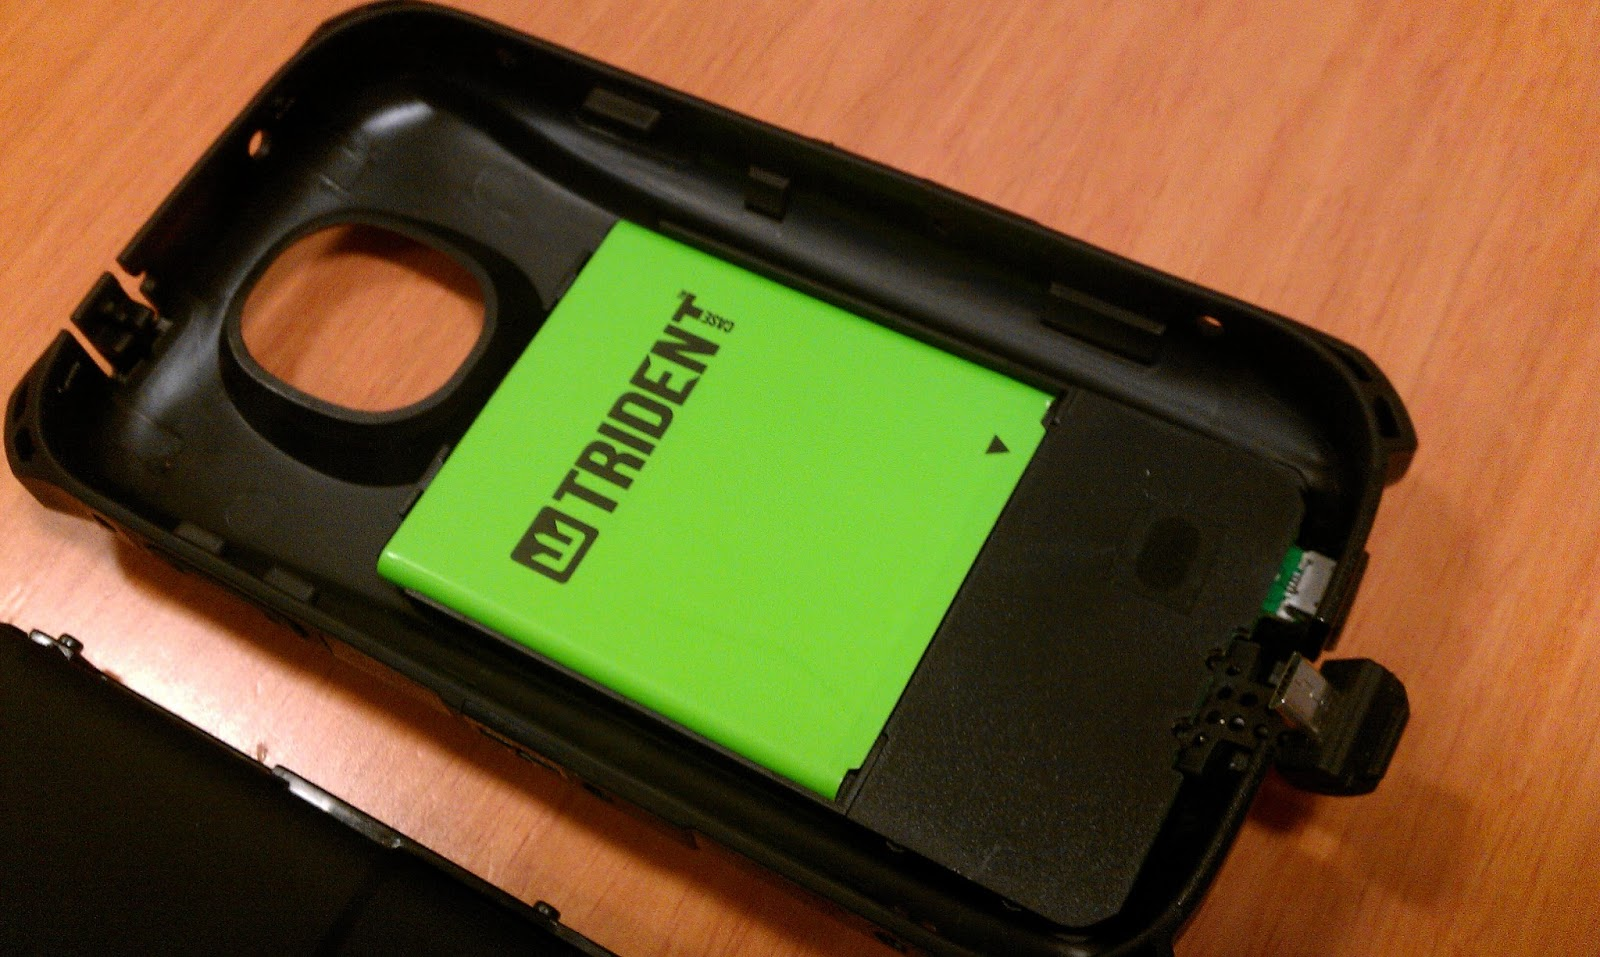 mophie galaxy s4 instructions